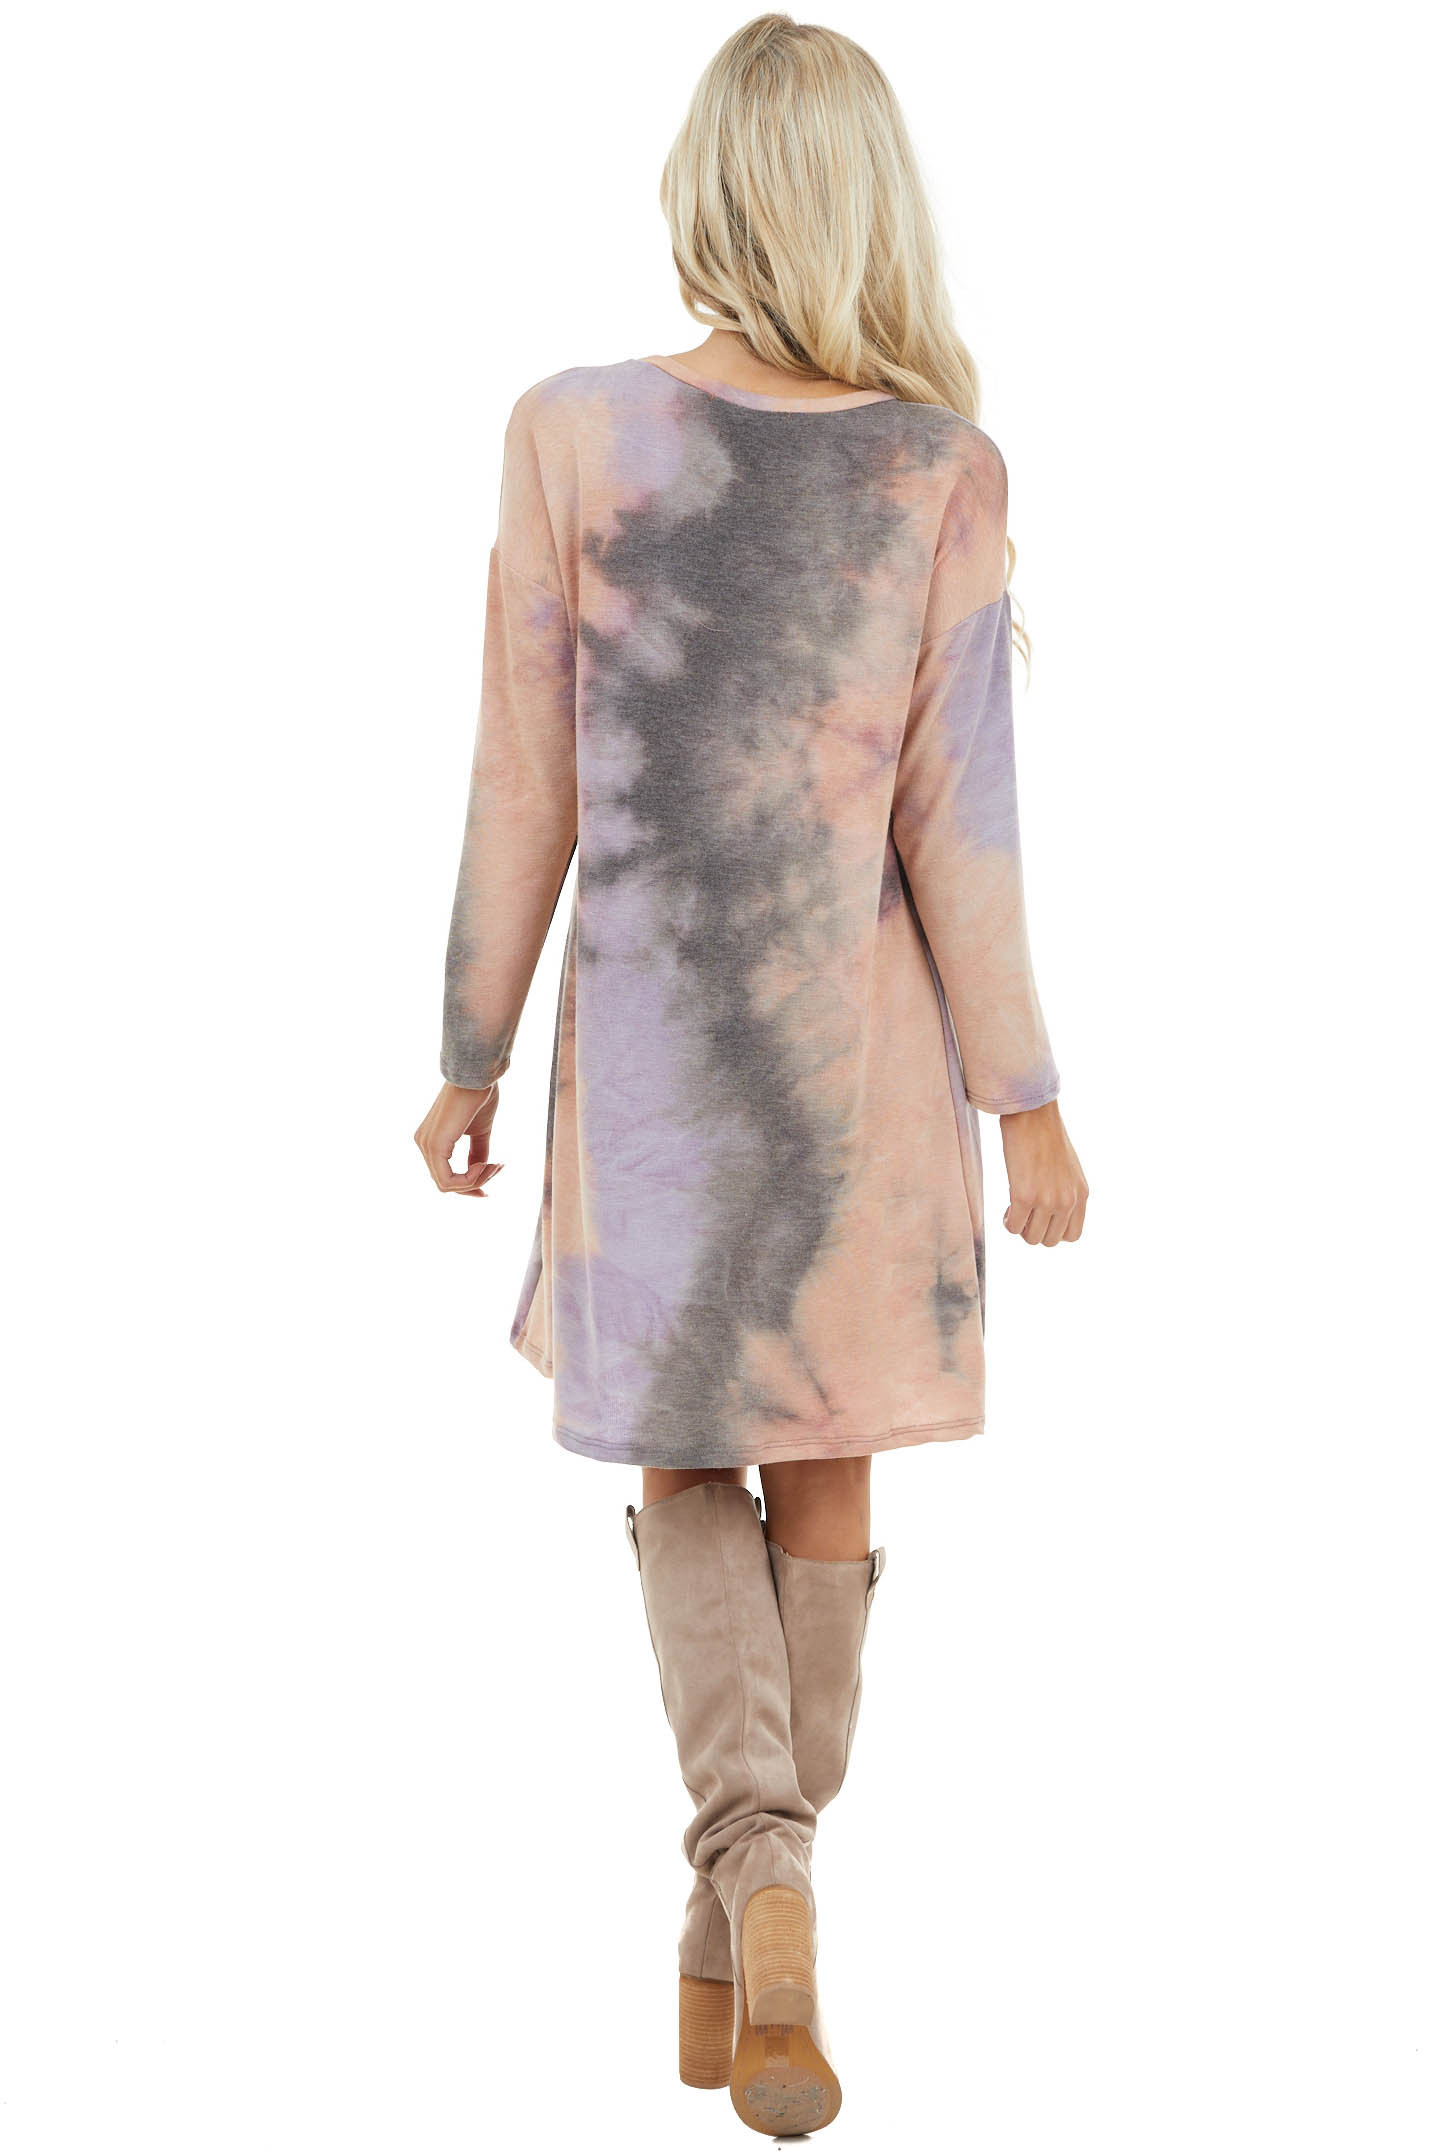 Lavender and Peach Tie Dye Dress with Front Pocket Detail